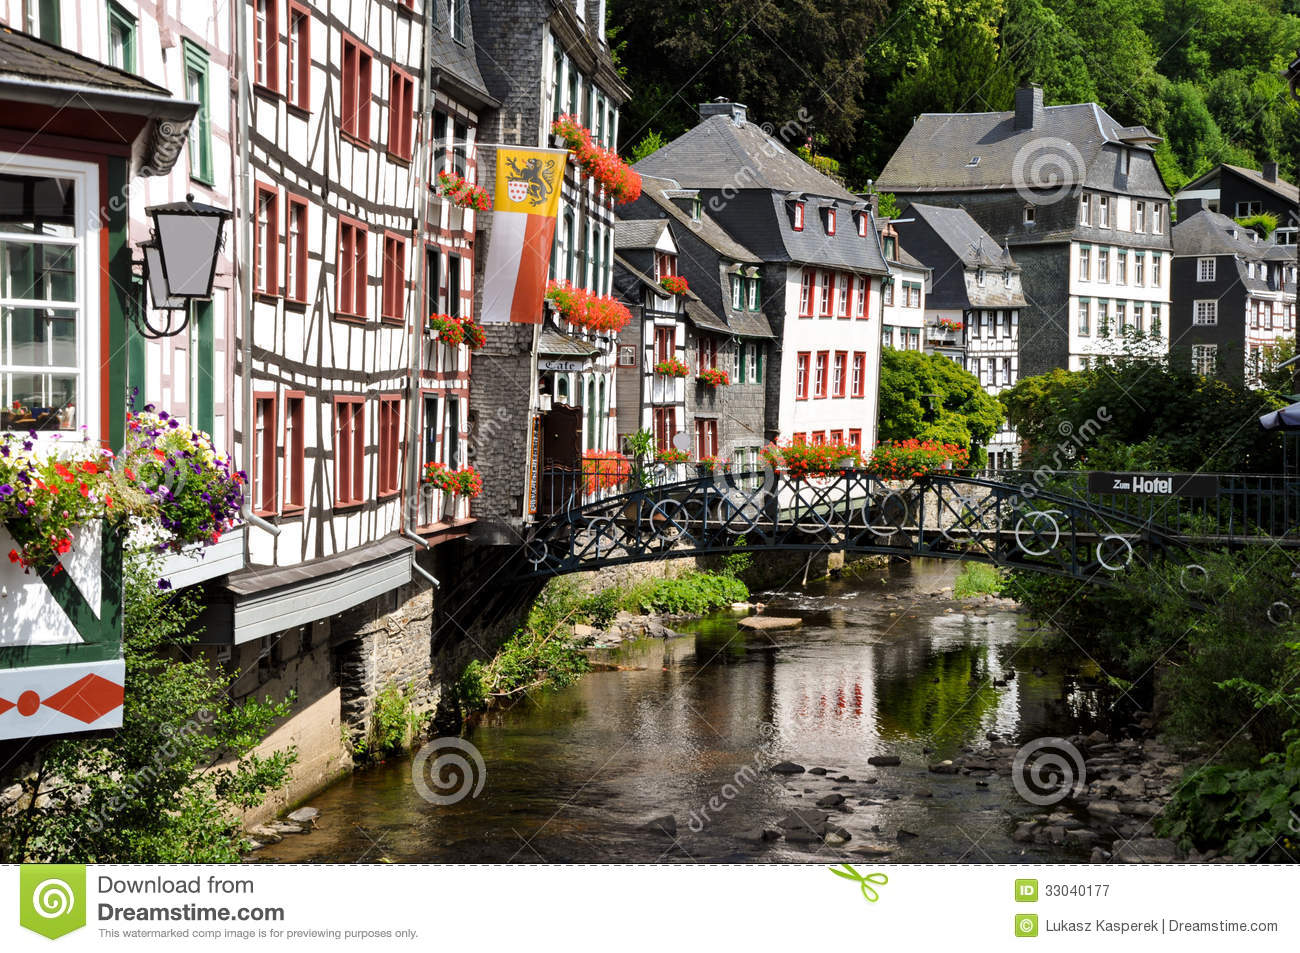 Royalty Free Stock Photography Traditional Buildings Monschau Germany Small Resort Town Eifel Region Western Located District Aachen North Image33040177 additionally Septic additionally Floor Plans further Structures also One Storey Flat Roof Of Minimalist Concrete And Wood 2638. on small home building plans